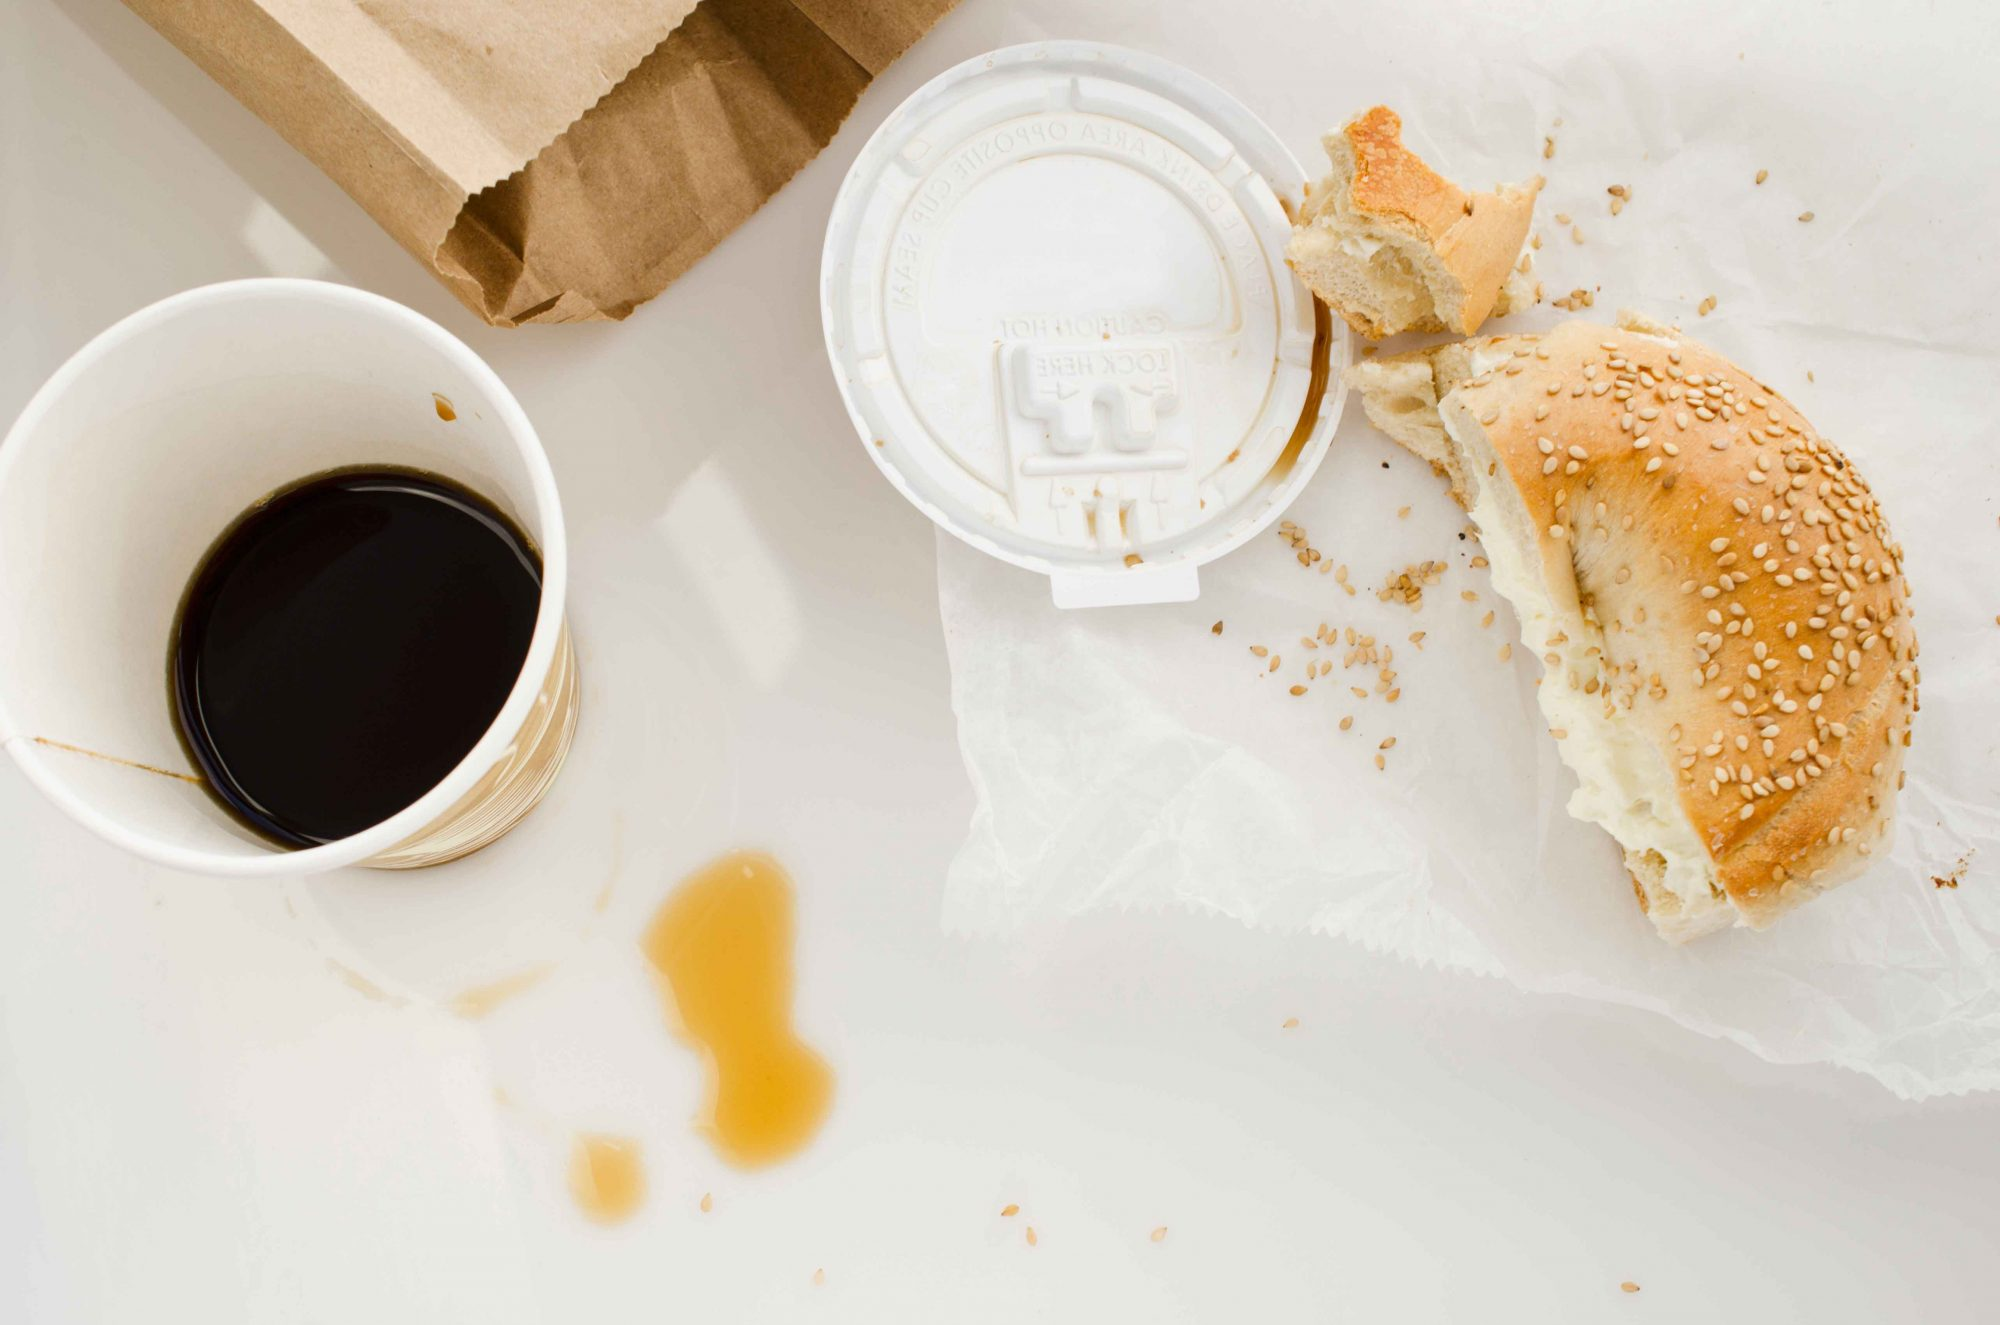 EC: A European Company Is Trying to Take Over Breakfast in America